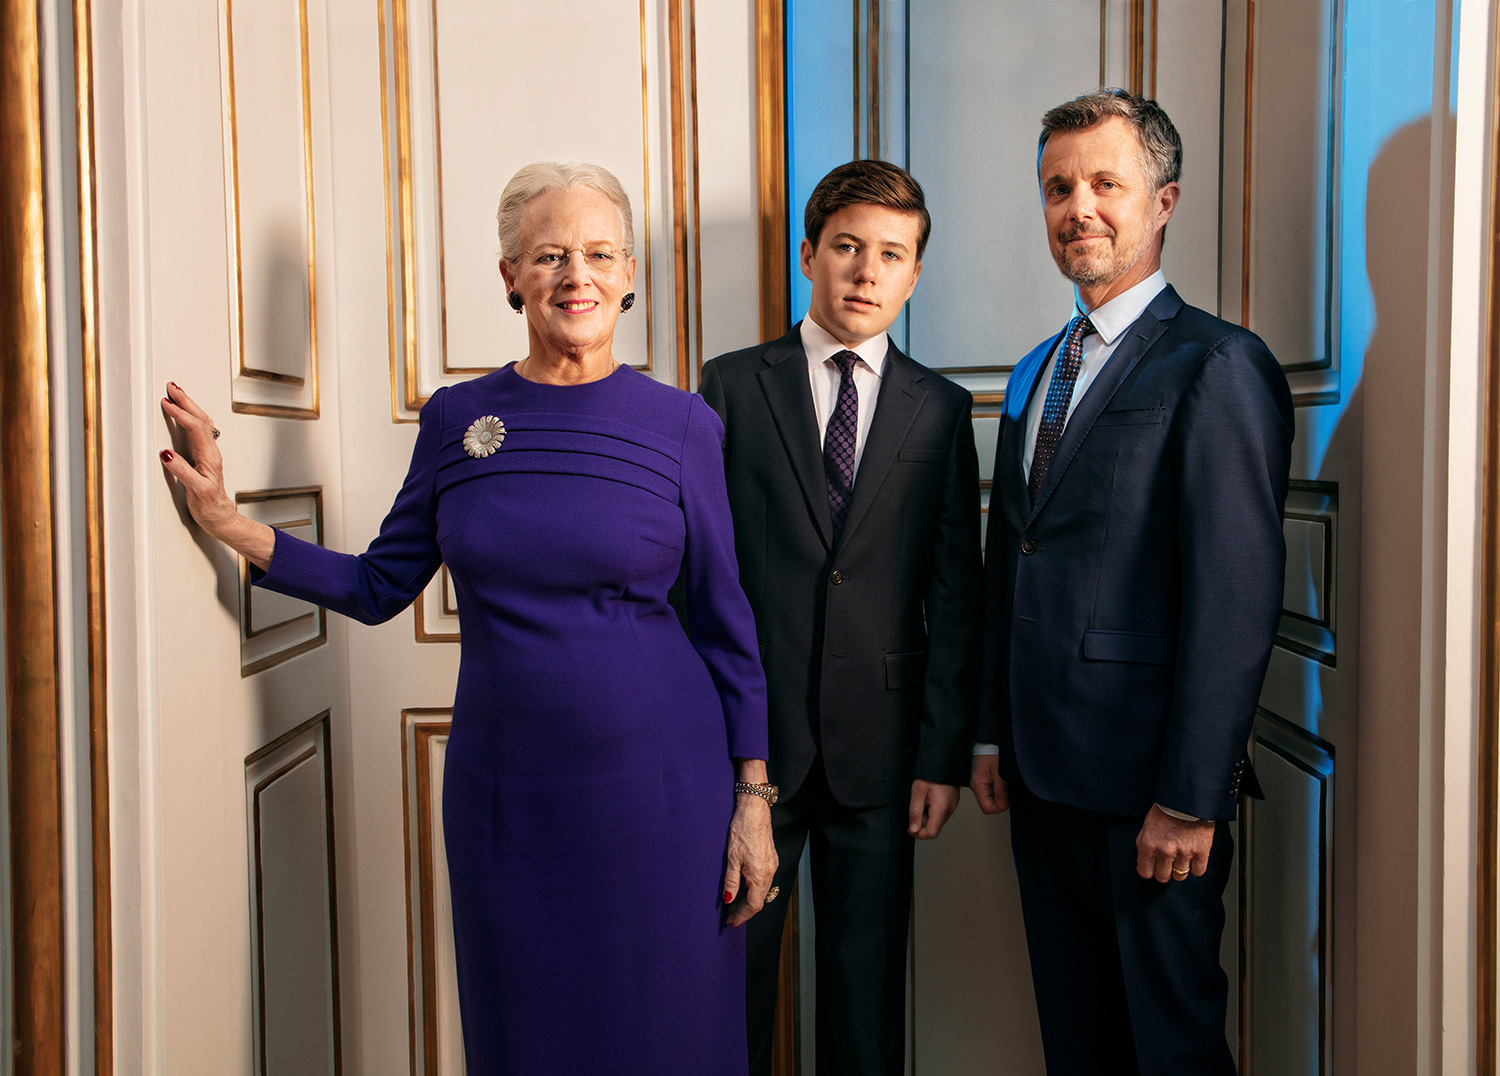 The Queen together with His Royal Highness The Crown Prince and His Royal Highness Prince Christian.